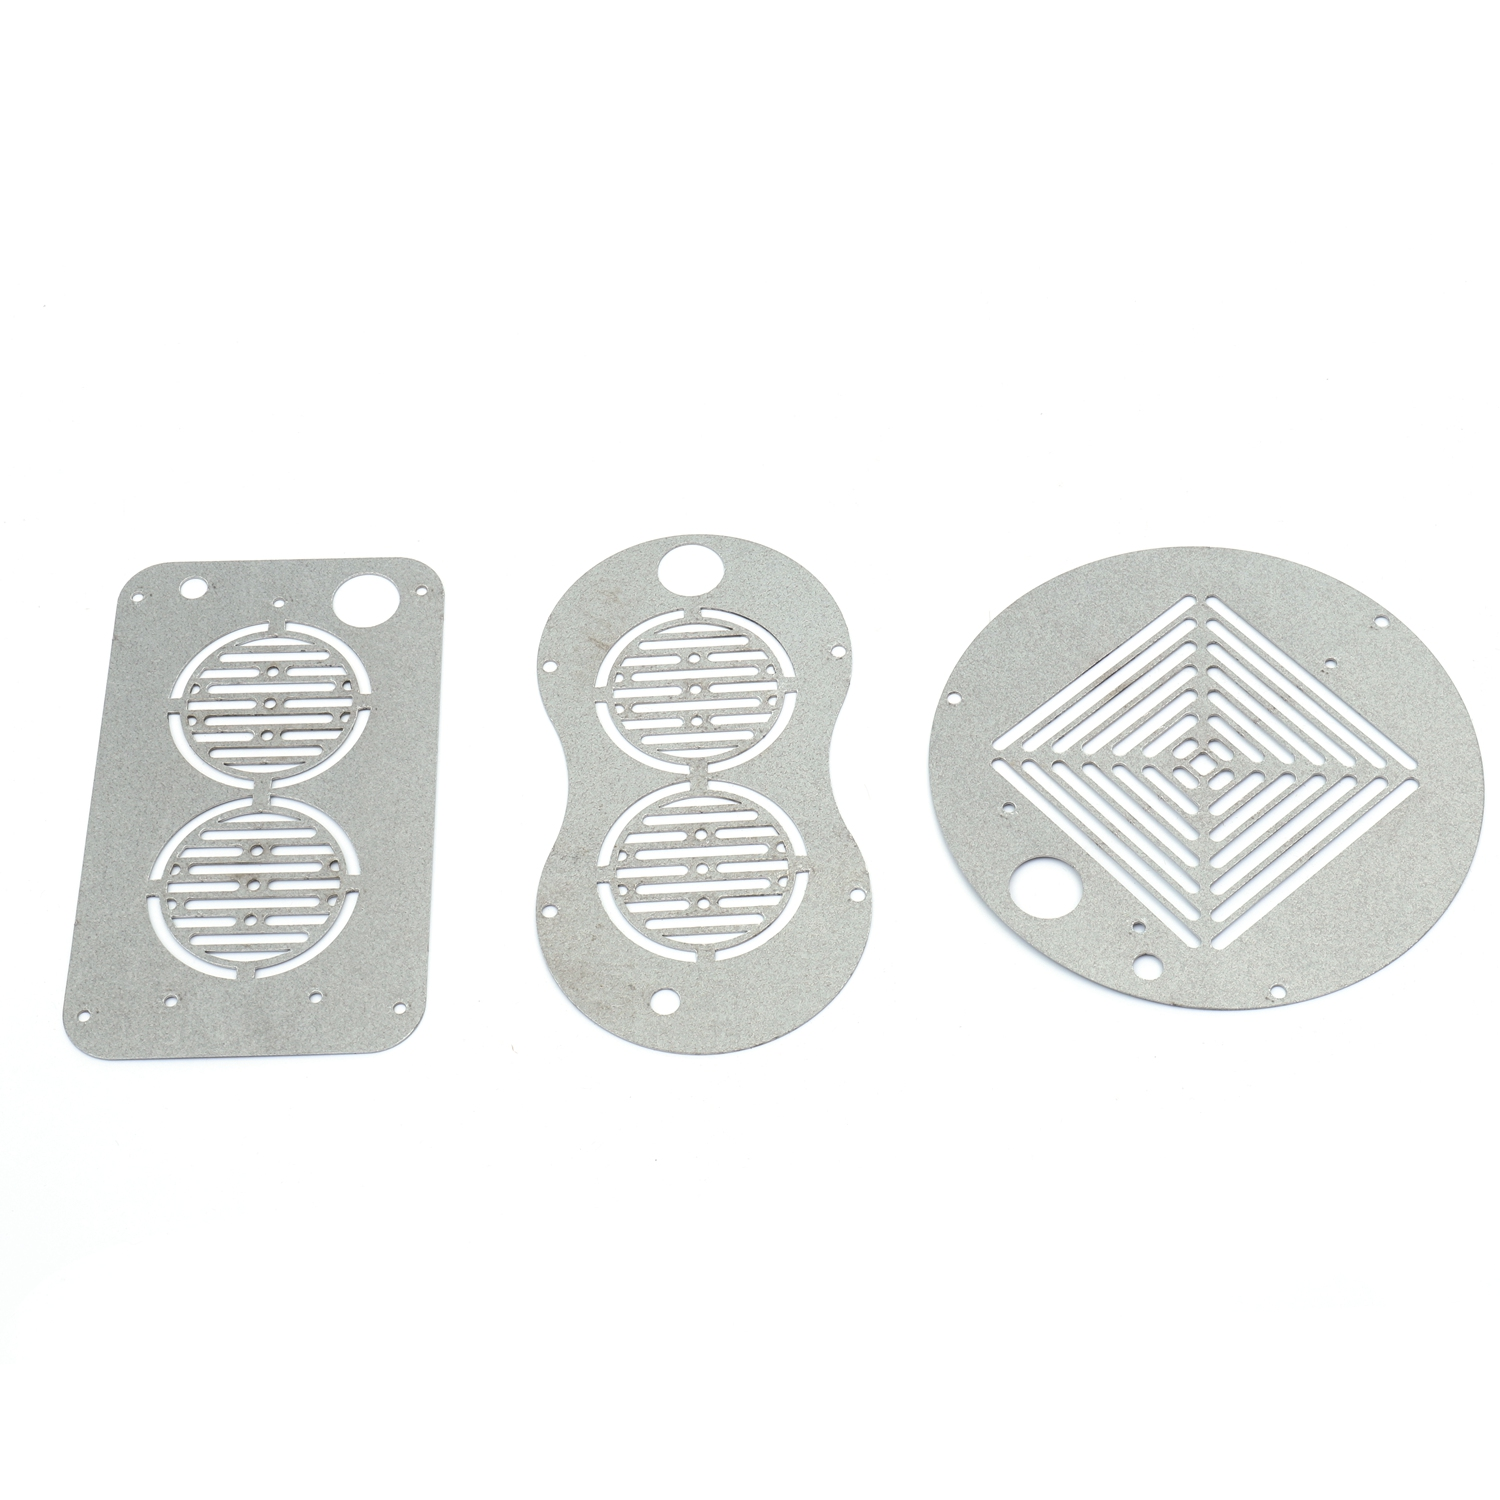 High quality  custom finishing powder coating titanium laser cut and bend part in china